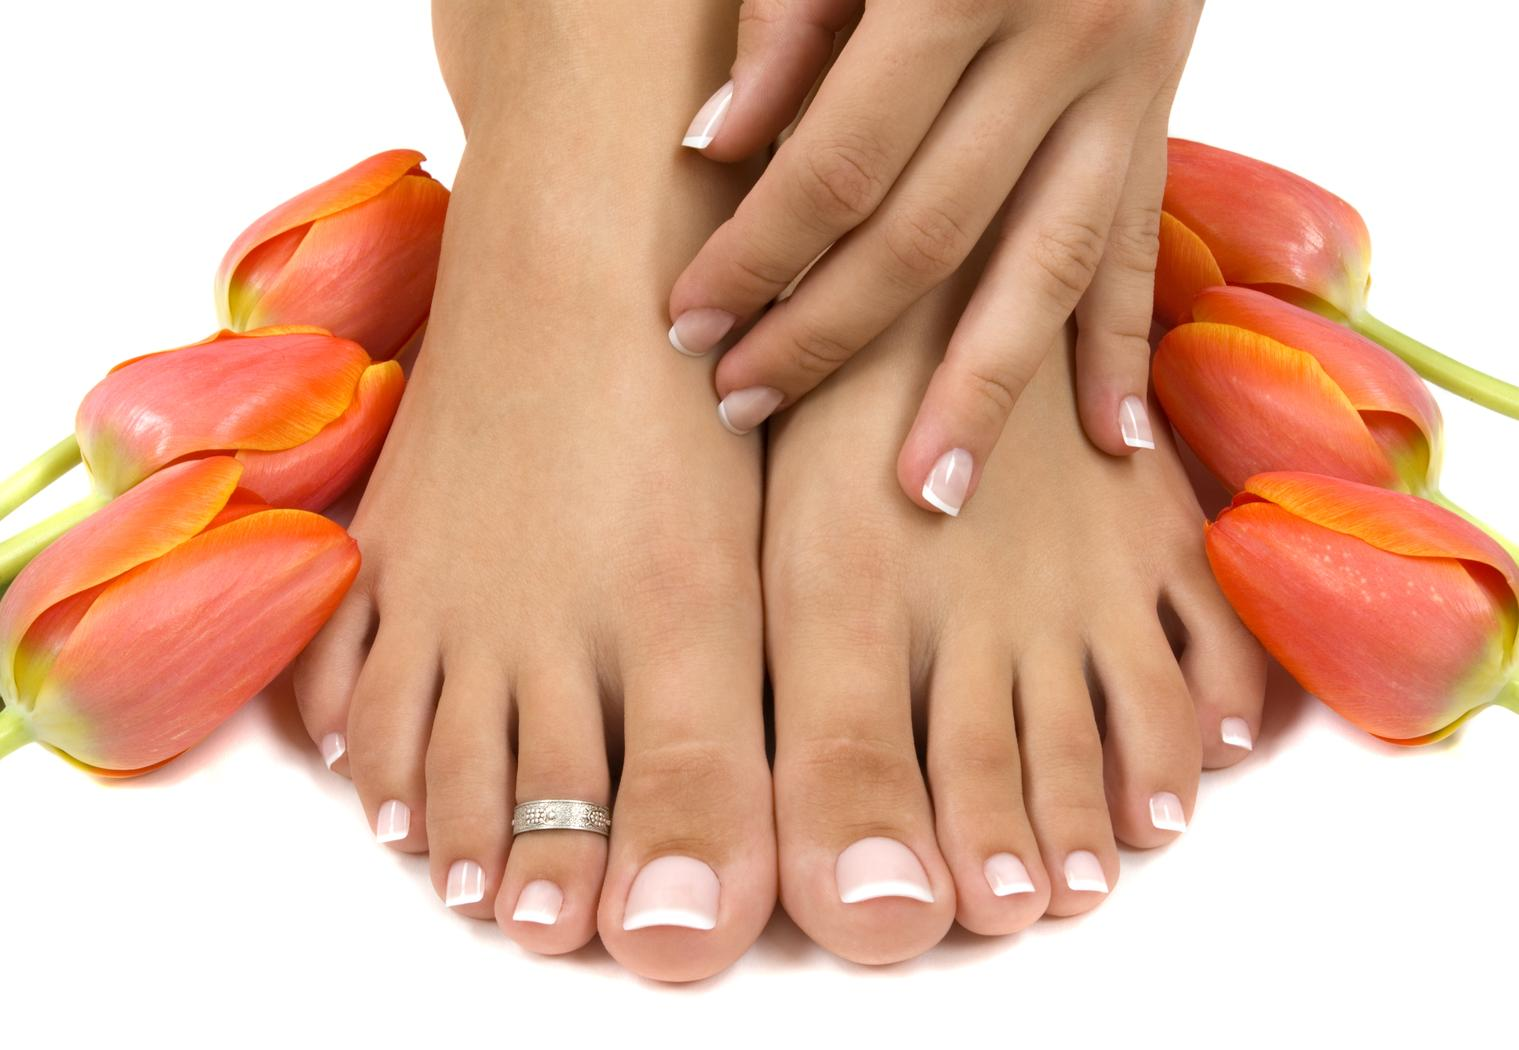 mobile manicures and pedicures i come to you classic manicure pedicure ...